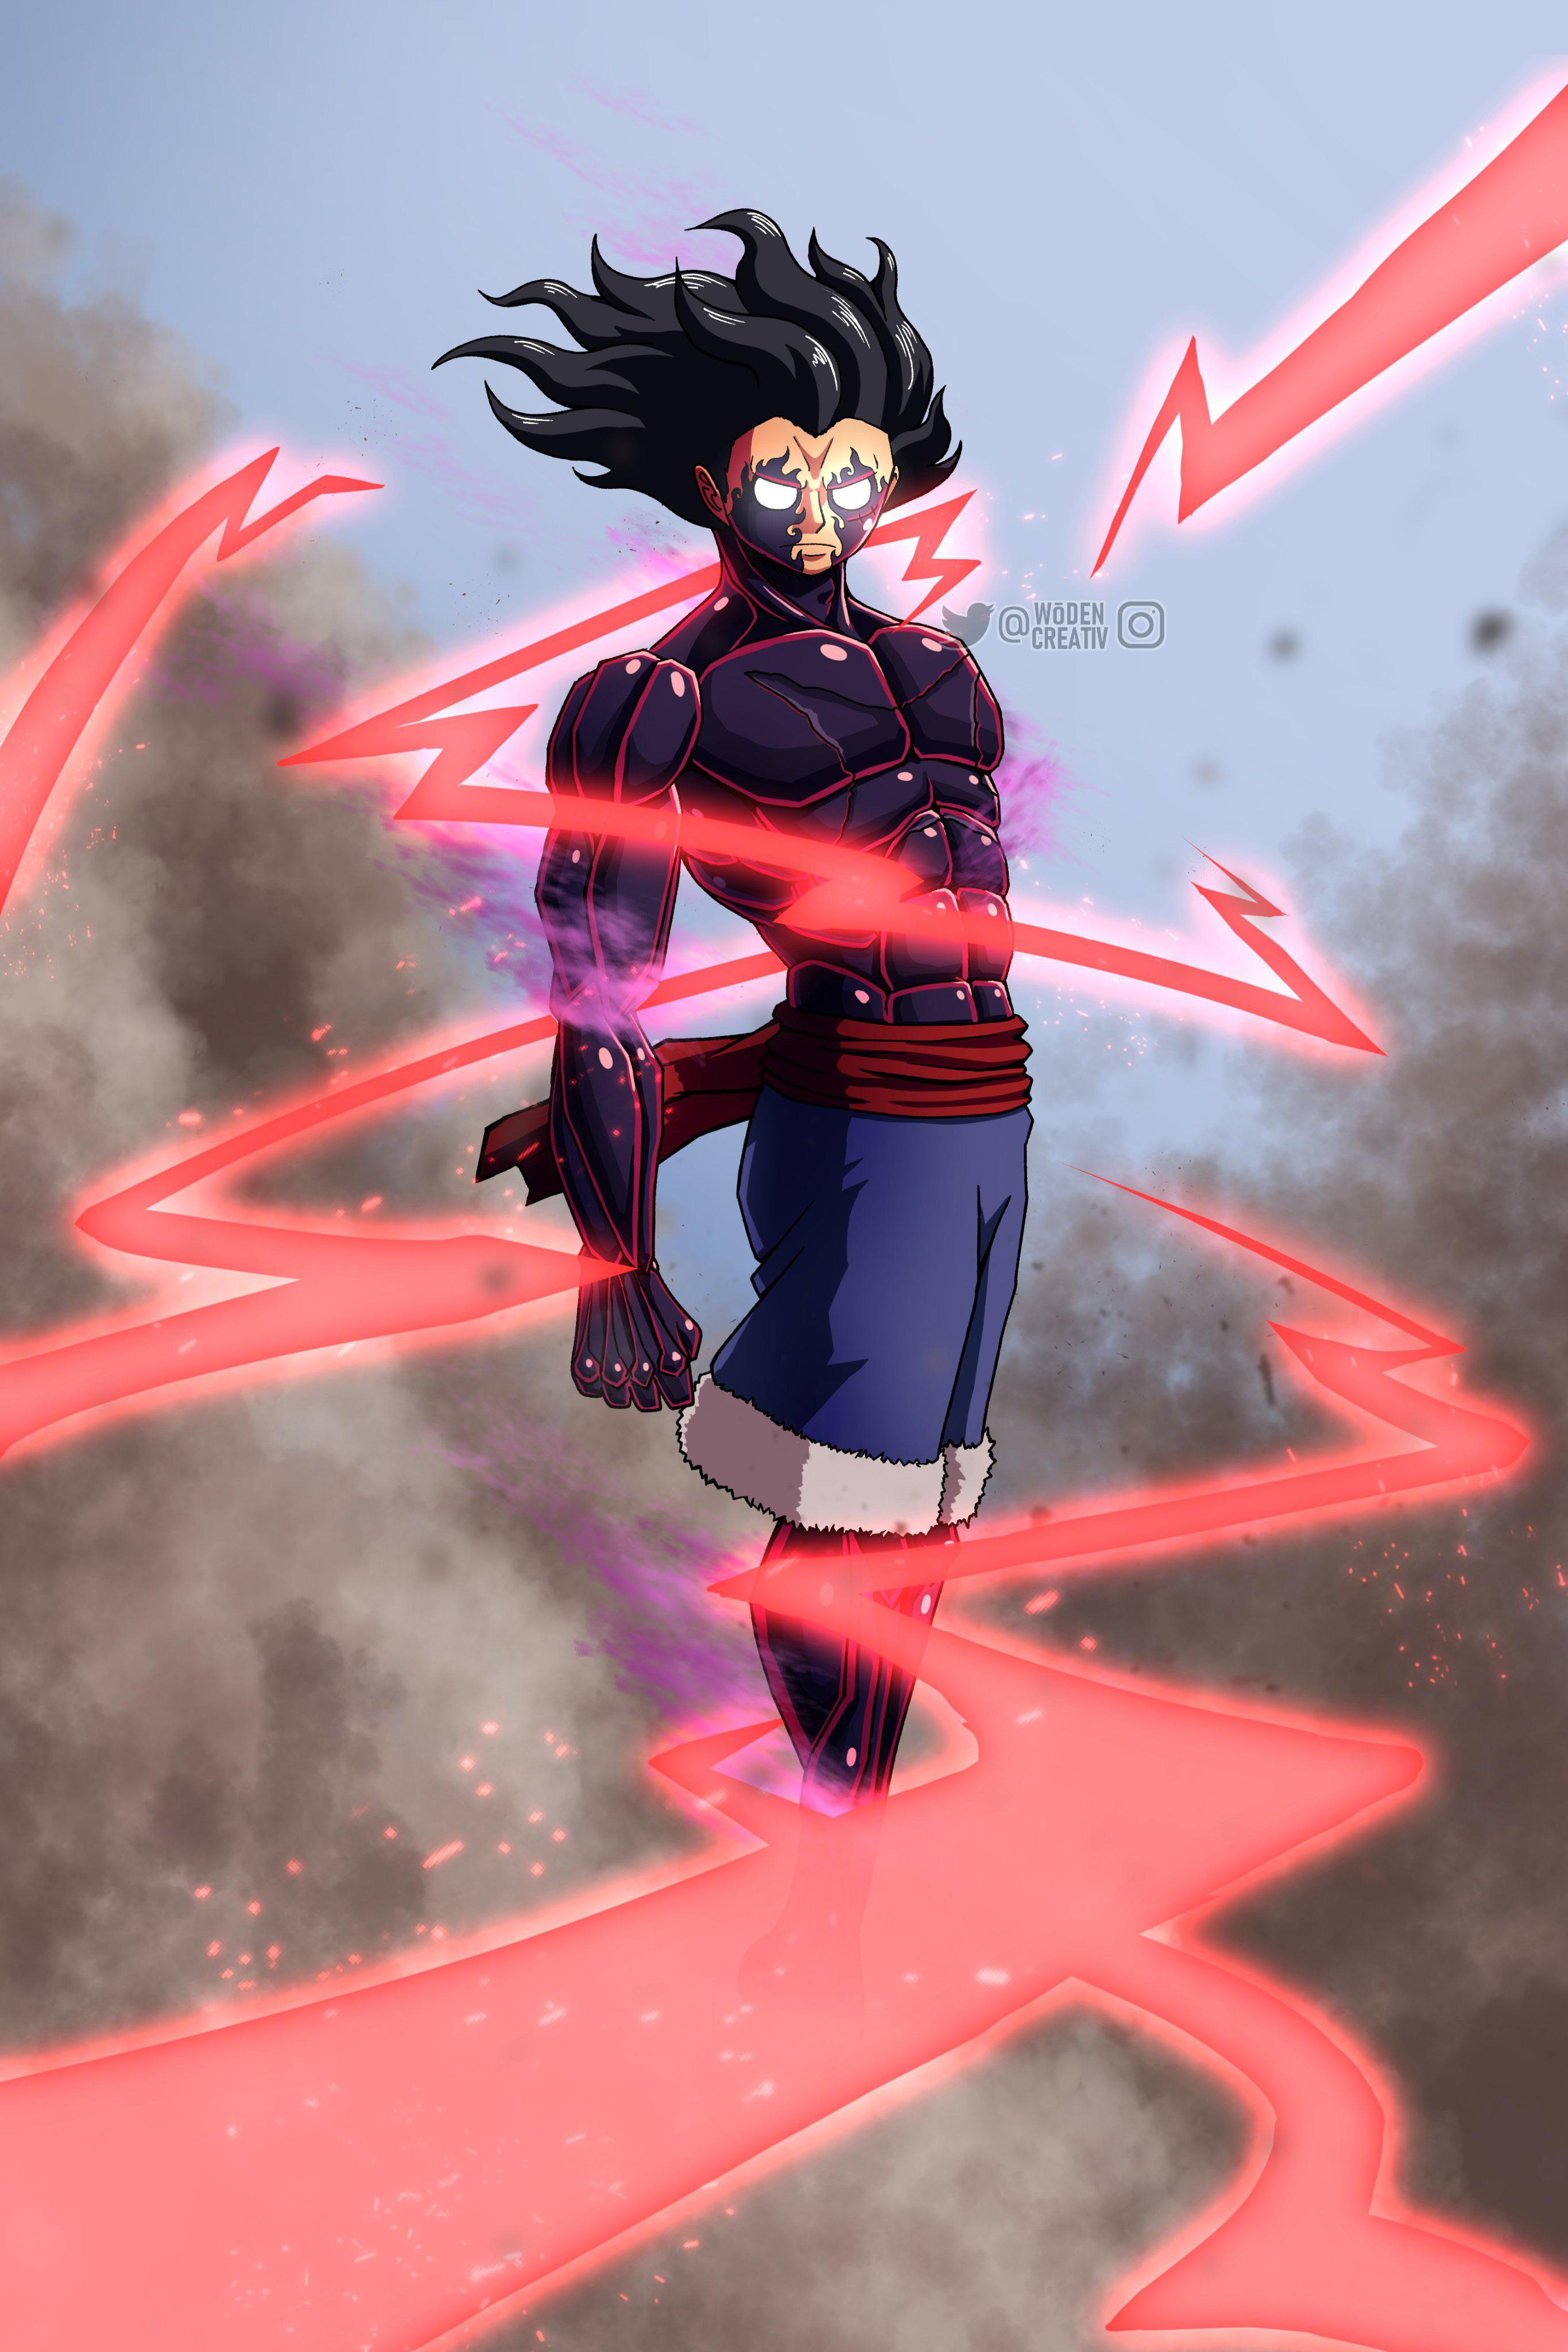 Luffy transforms to gear 5 the continuation of goku vs saitama, now called anime war. 5th Luffy Gear 3